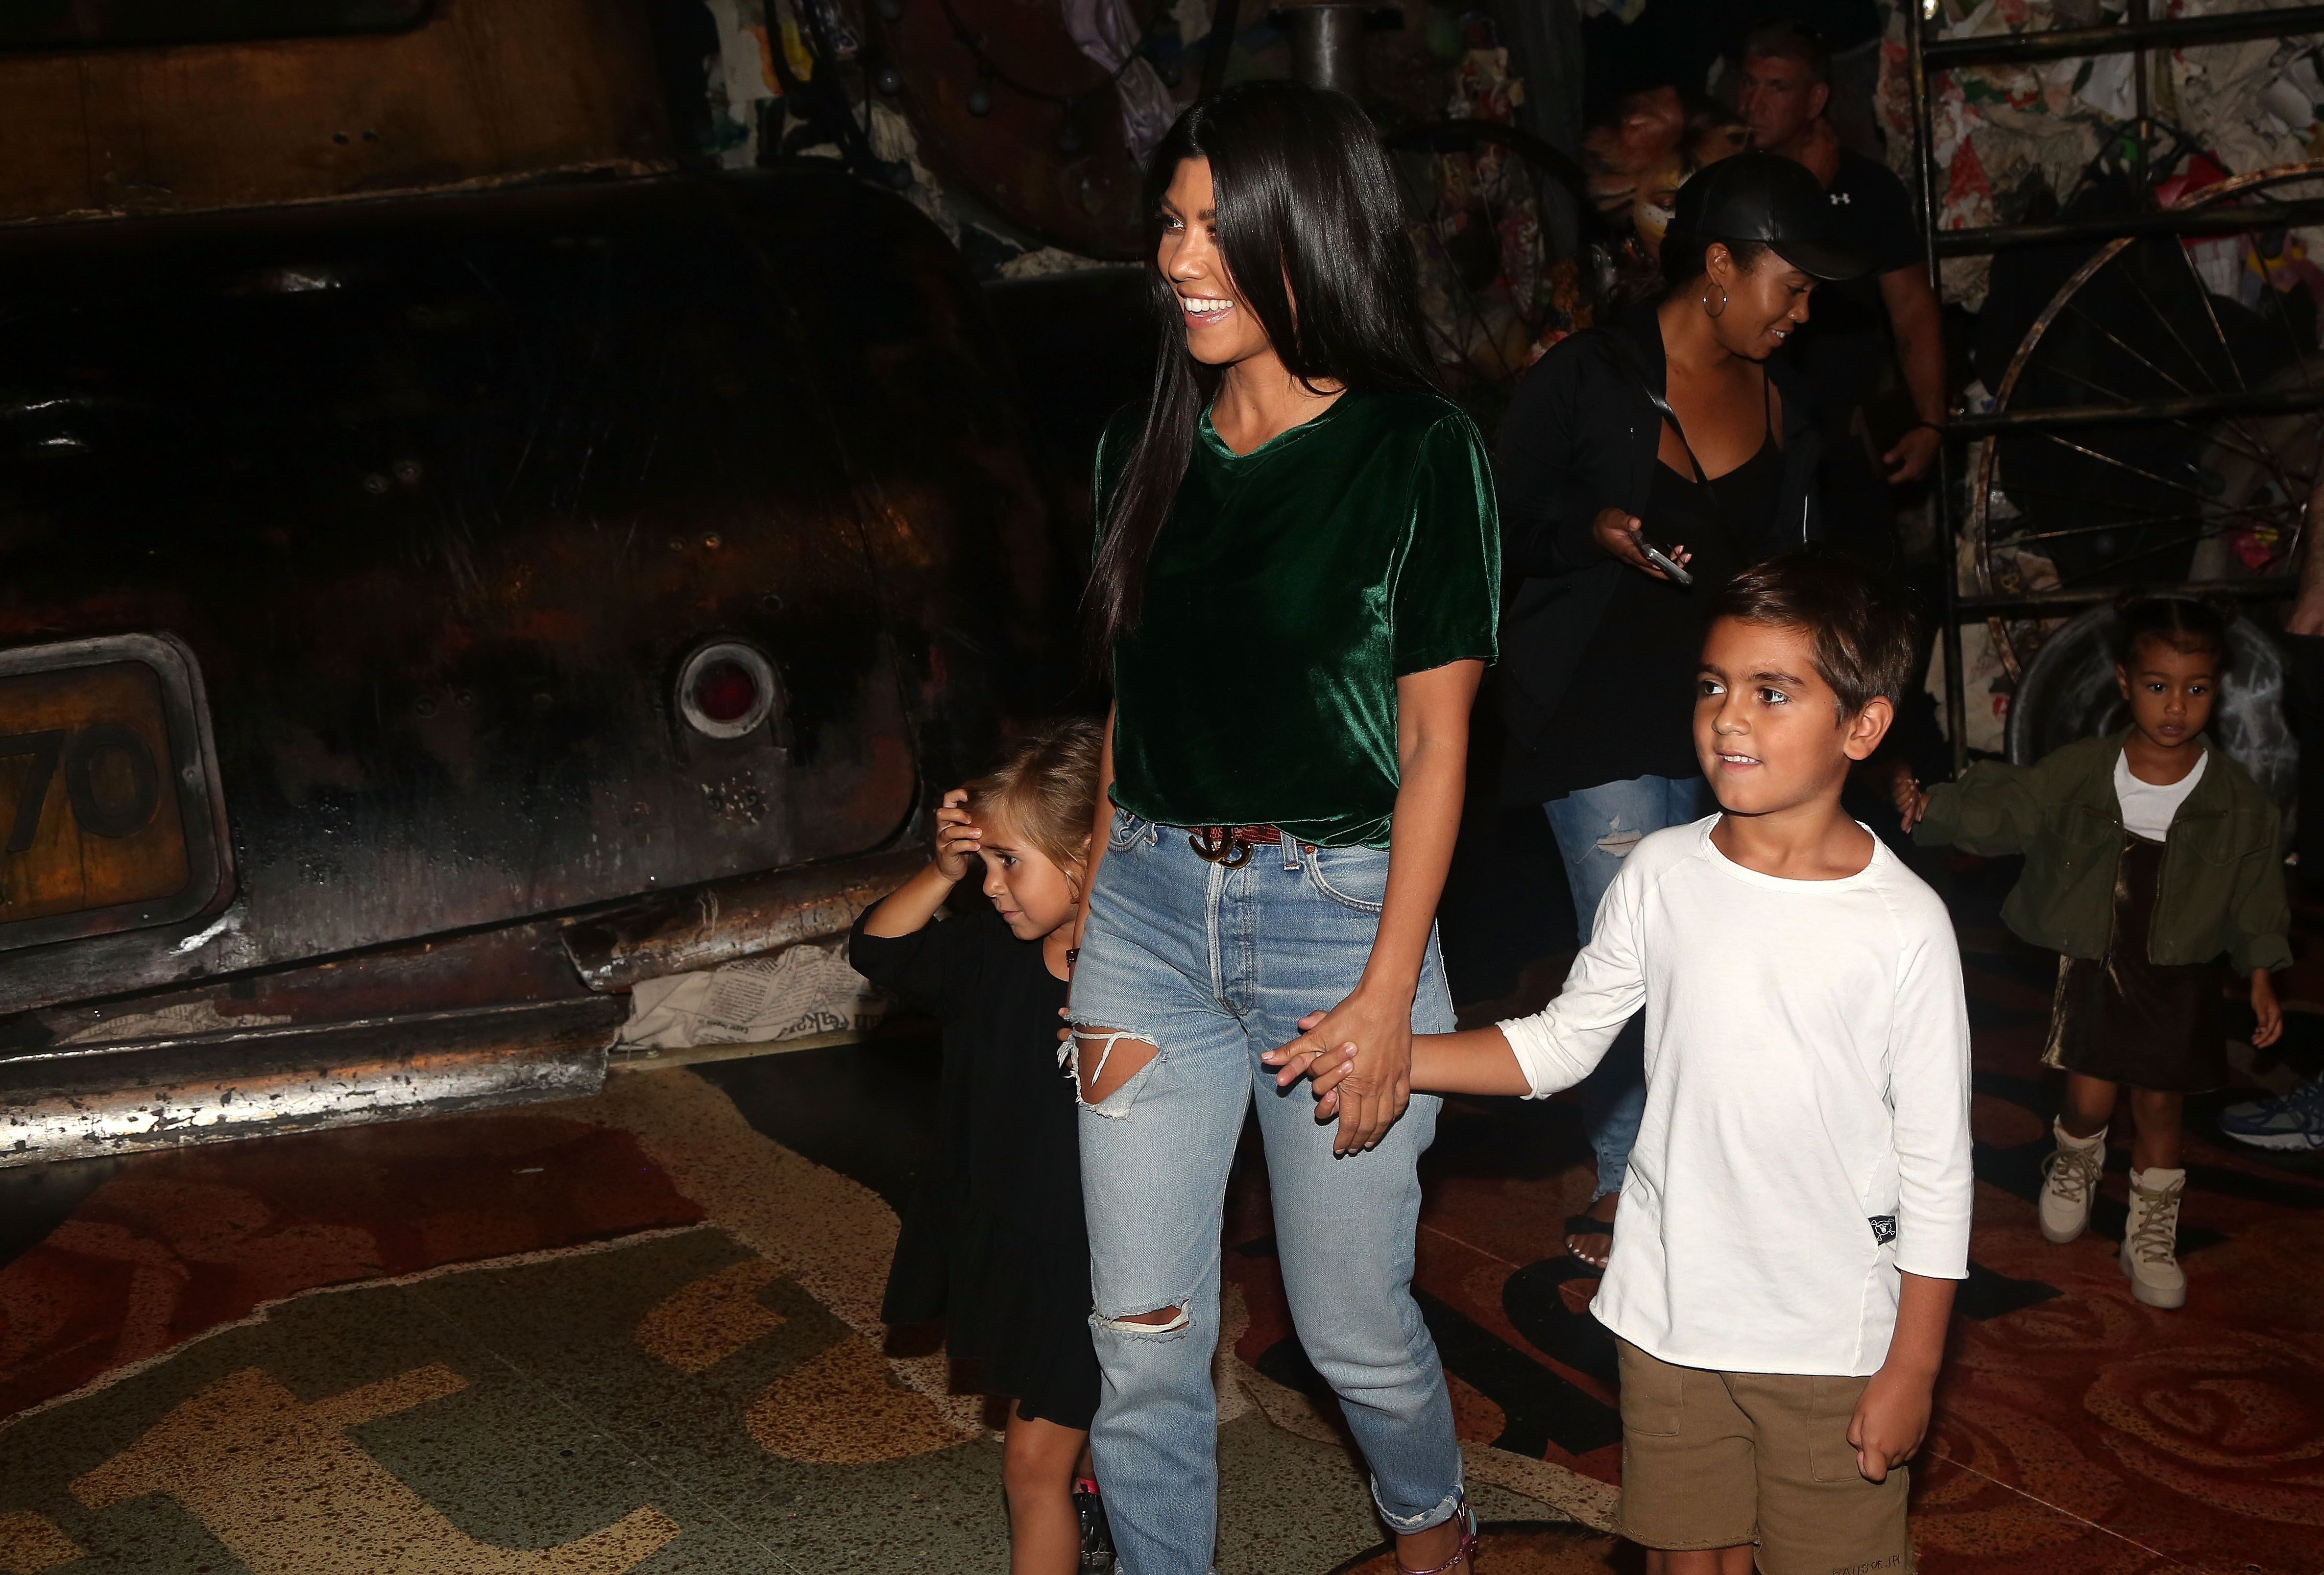 """Kourtney Kardashian with her chidren Mason and Penelope Disick, and niece North West backstage at """"Cats"""" on Broadway in 2016   Source: Getty Images"""